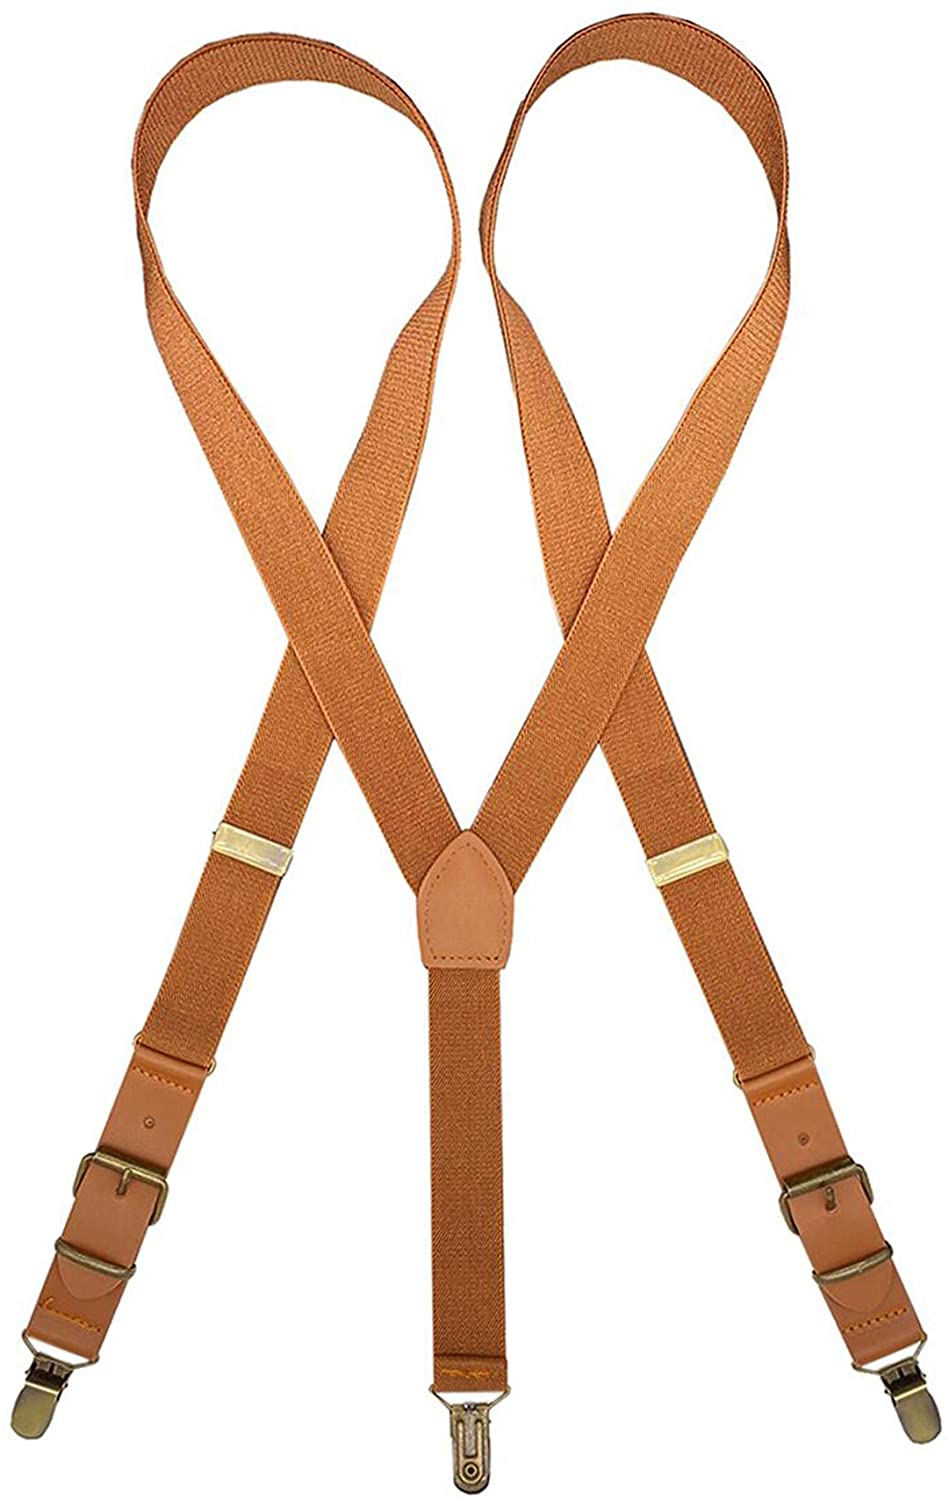 MENDENG Adjustable Suspenders for Men Bronze Metal Clips Braces with Leather